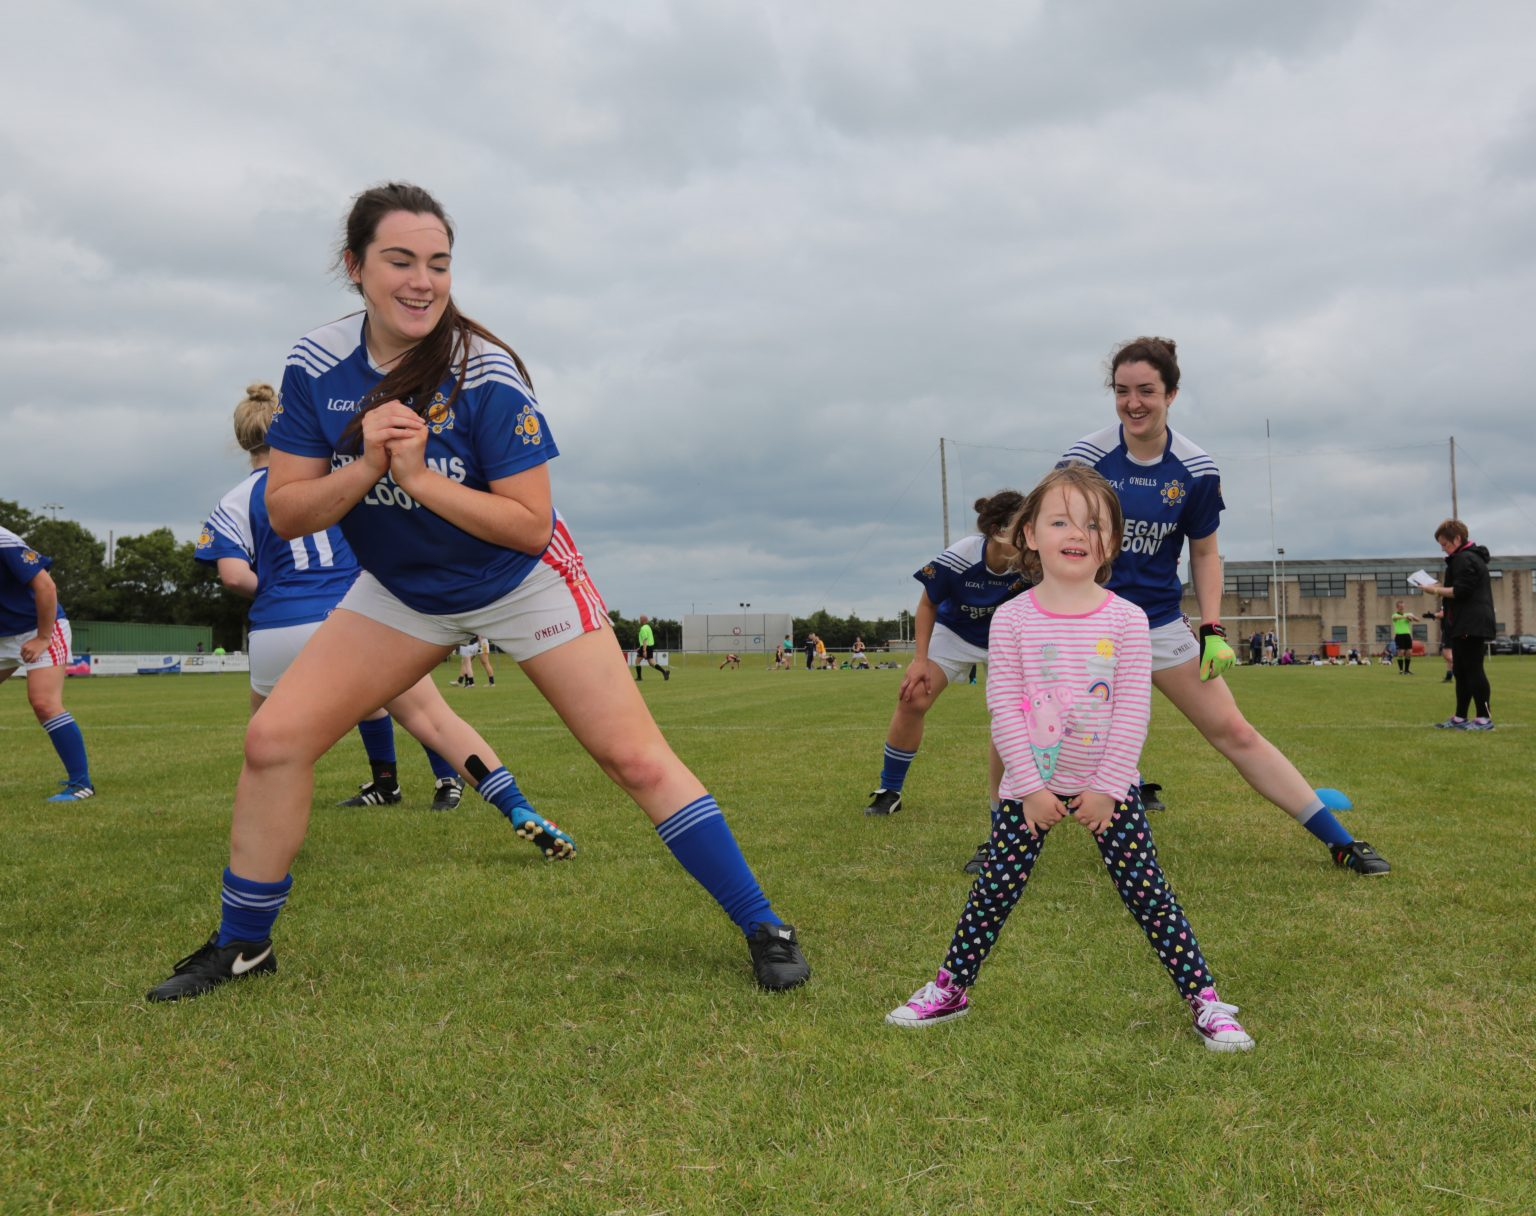 Two ladies football players in a dark blue jersey doing stretching exercise with a young girl in a pink top and black polka dot trousers